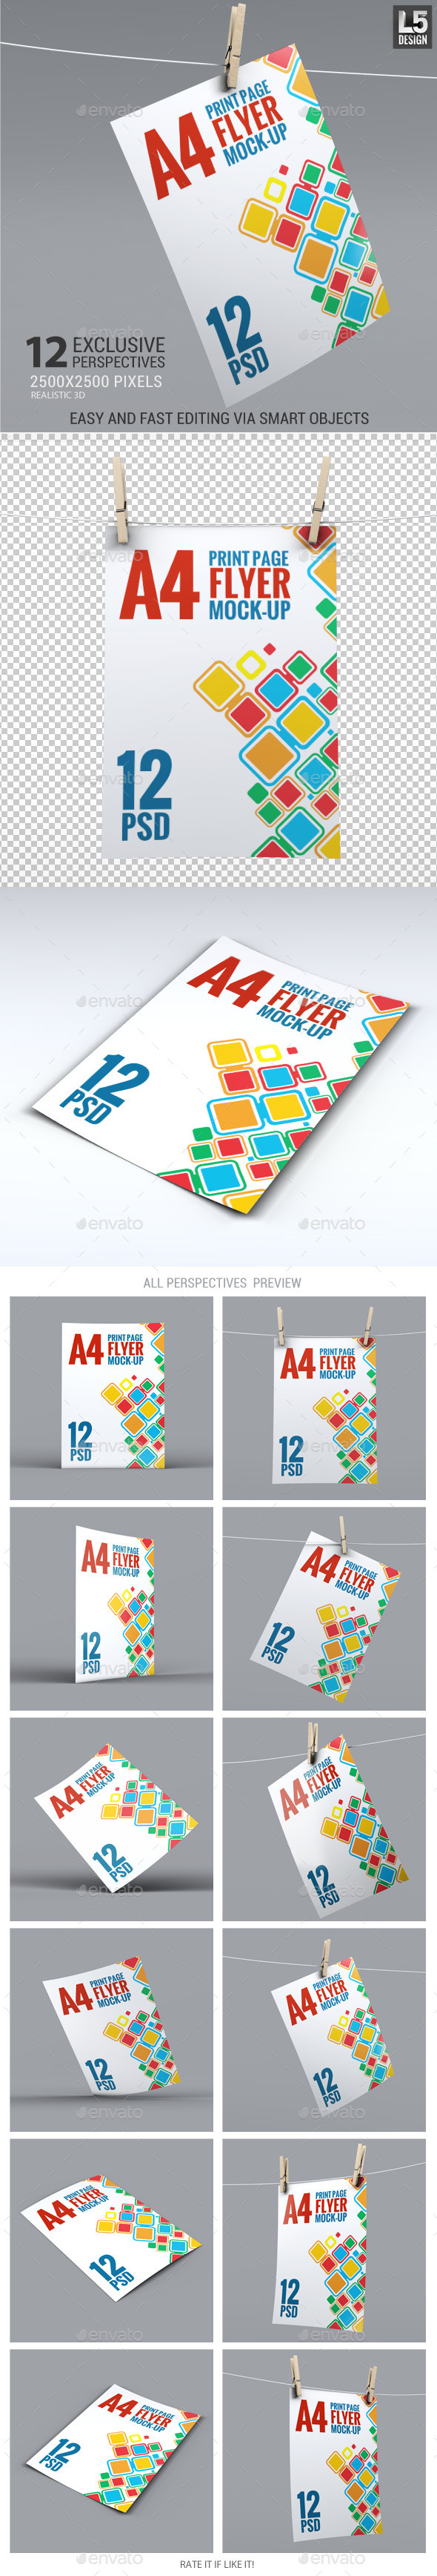 GraphicRiver A4 Corporate Flyer Mock-Up 11625507